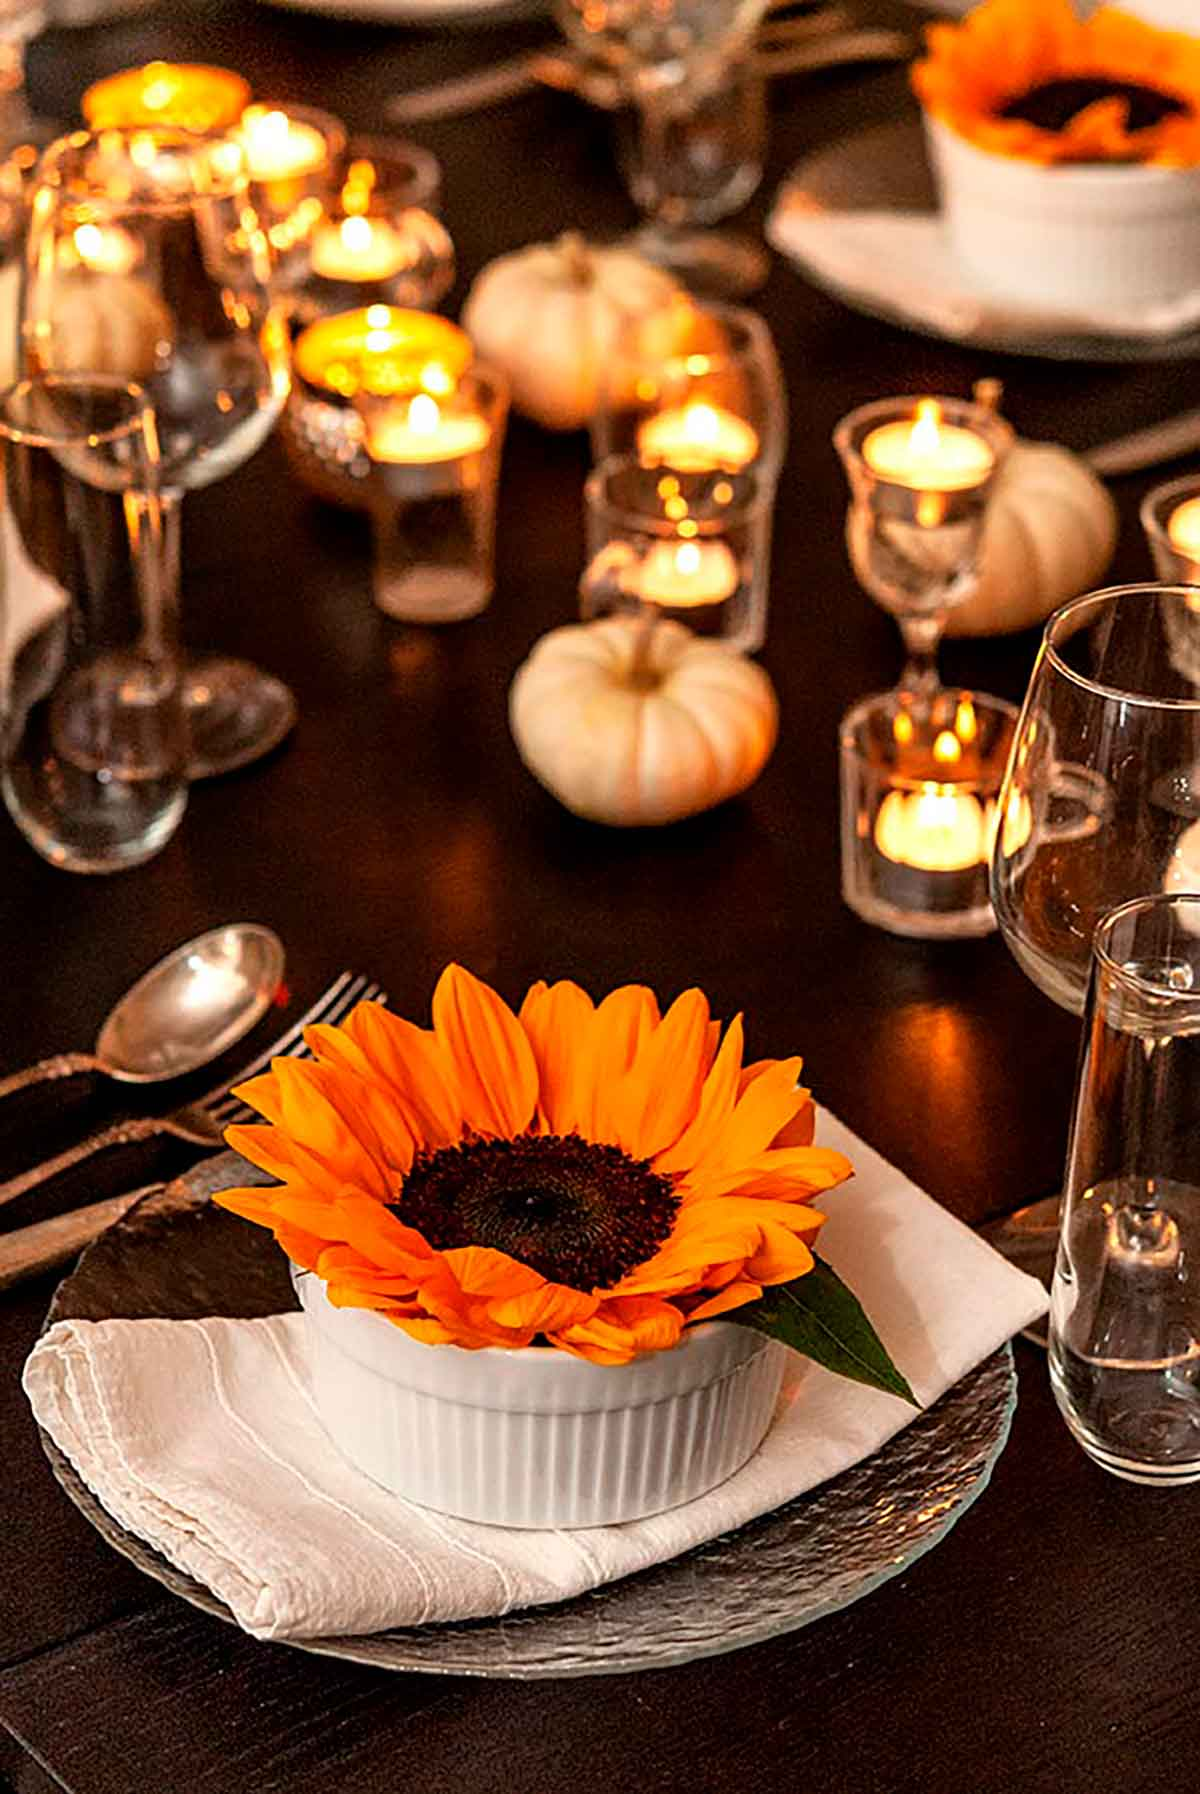 A sunflower in a soup bowl on a set dinner table, decorated with tea lights and small, white pumpkins.